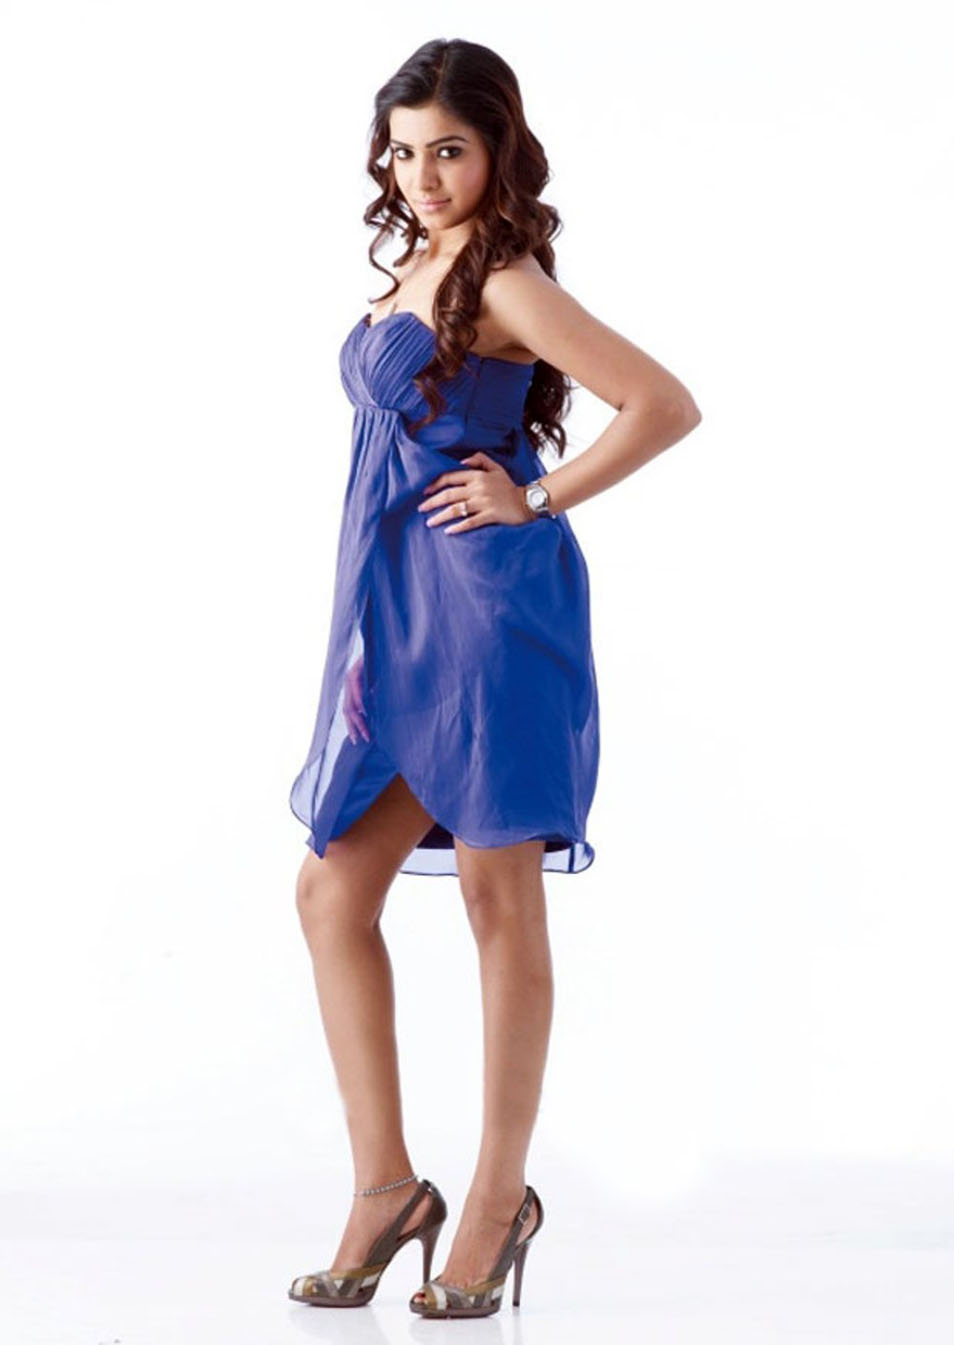 Samantha New Photoshoot in Blue Dress